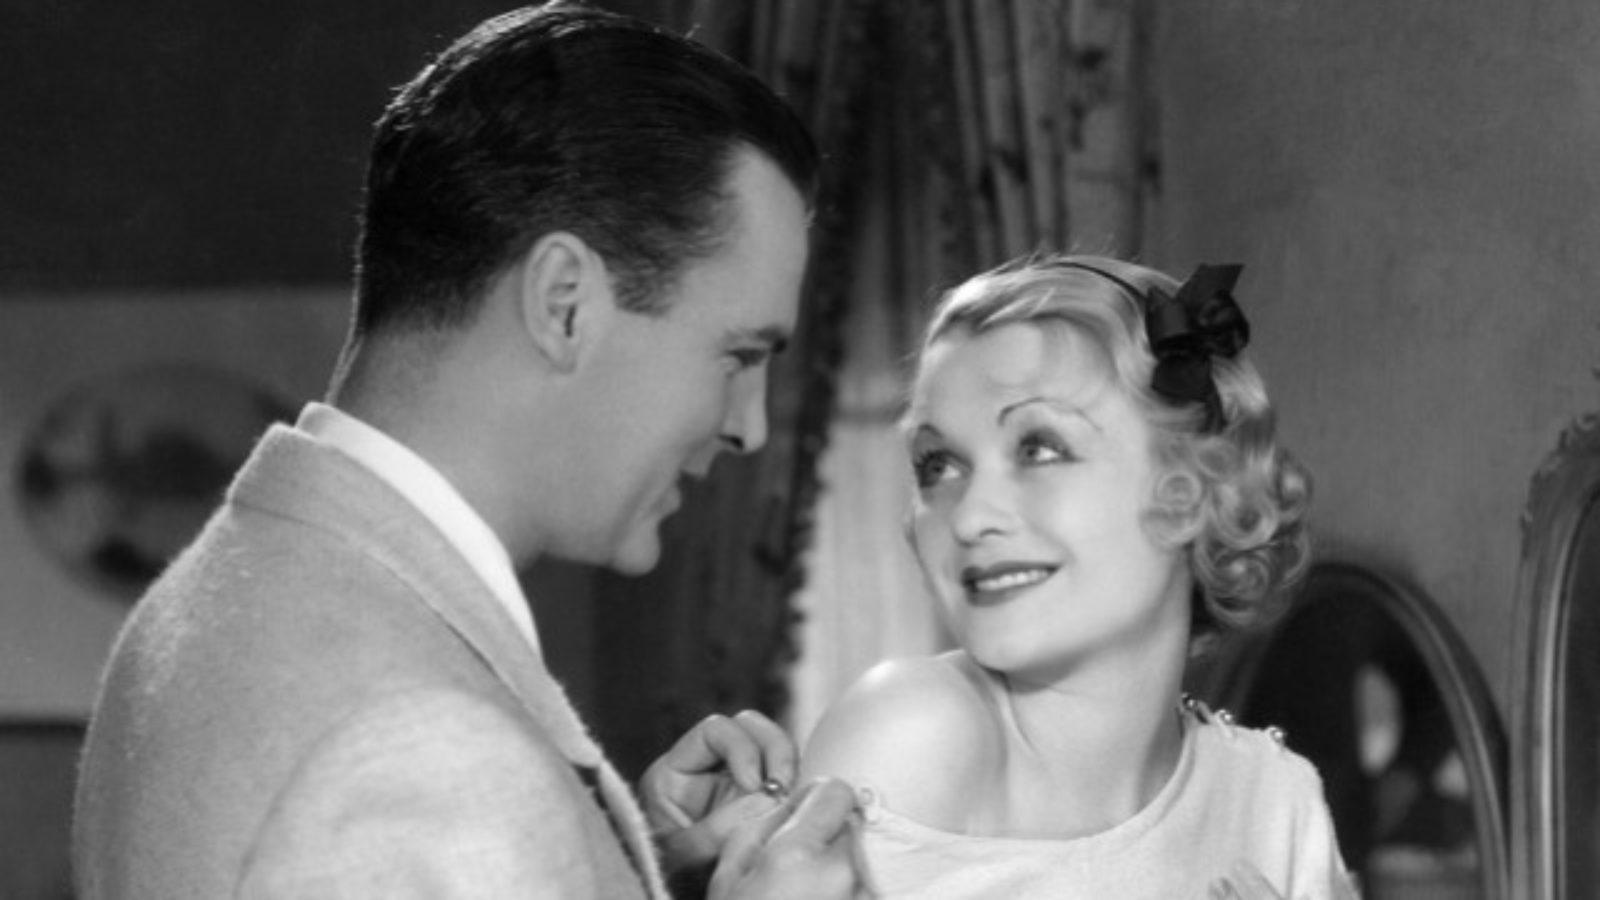 Constance Bennett and Neil Hamilton in What Price Hollywood? (1932)